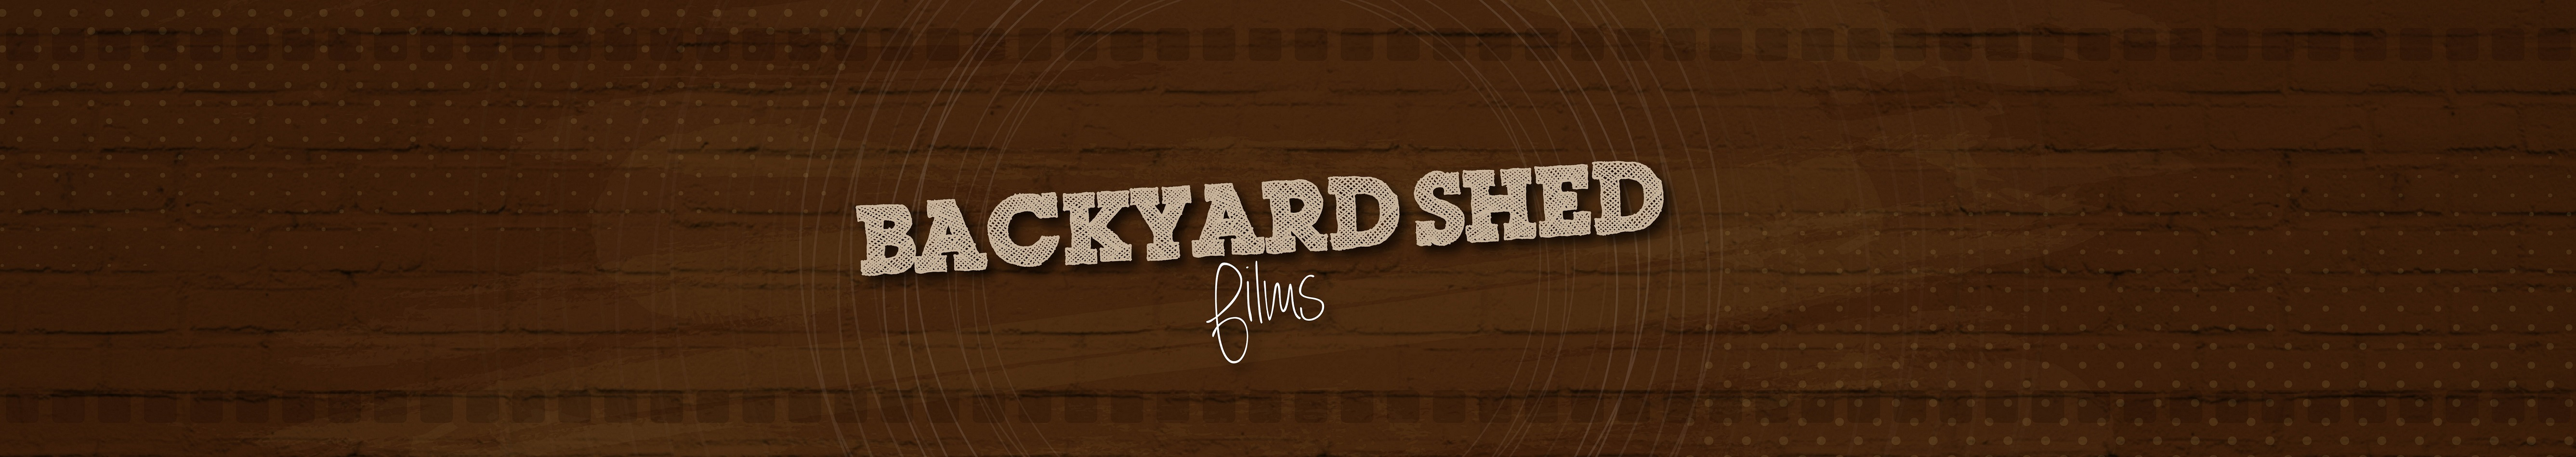 Lagniappe Brass Band (live promo video) | Backyard Shed Films